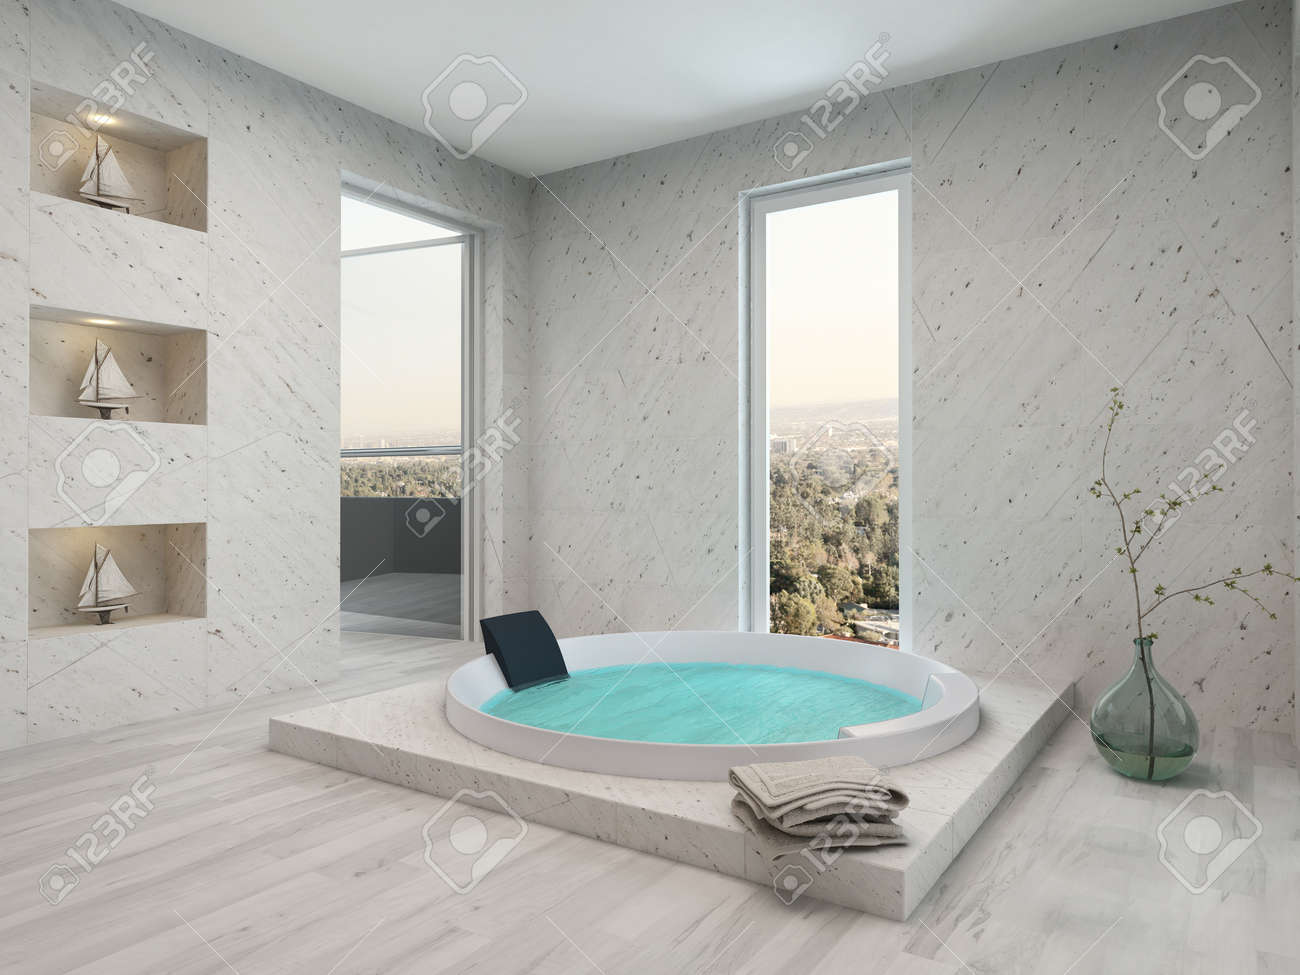 Modern bathroom interior with parquet floor and jacuzzi stock